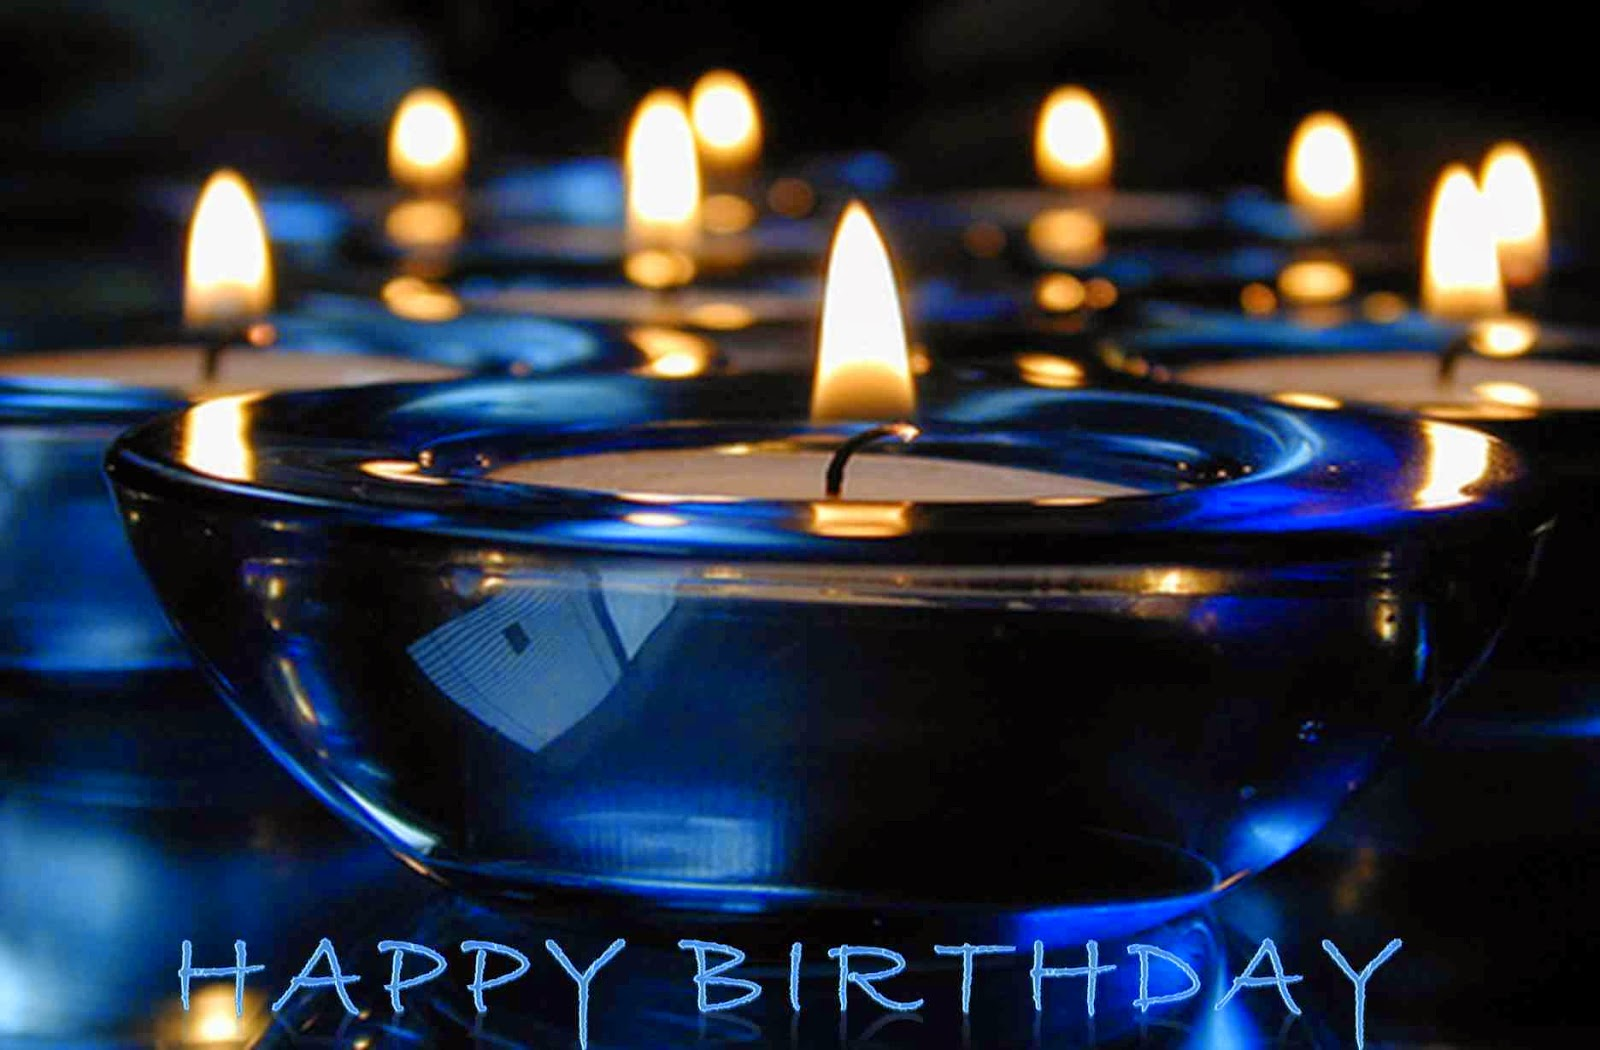 hd wallpapers for birthday wishes ; Happy-Birthday-Amazing-Candles-HD-Wallpaper